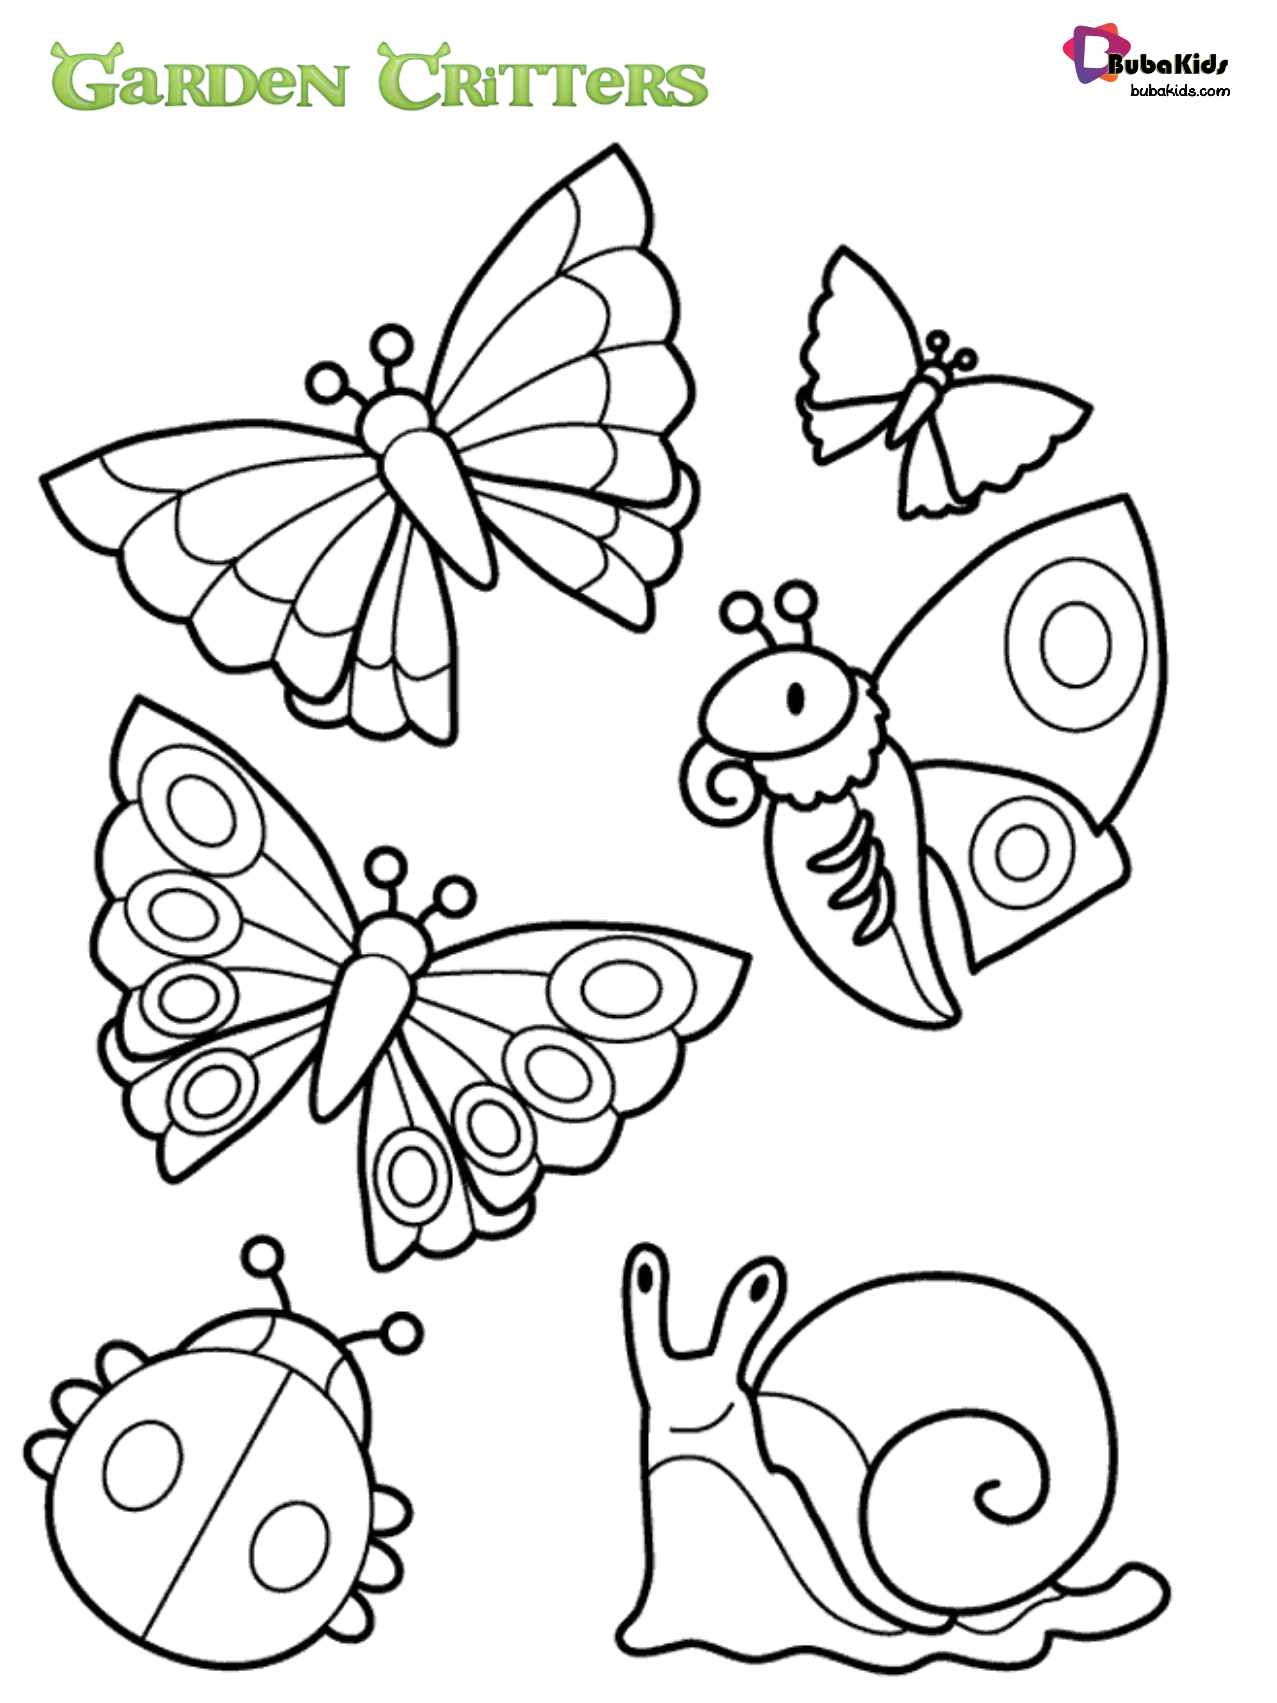 Garden Critters Coloring Page Animal Coloring Page In 2020 With